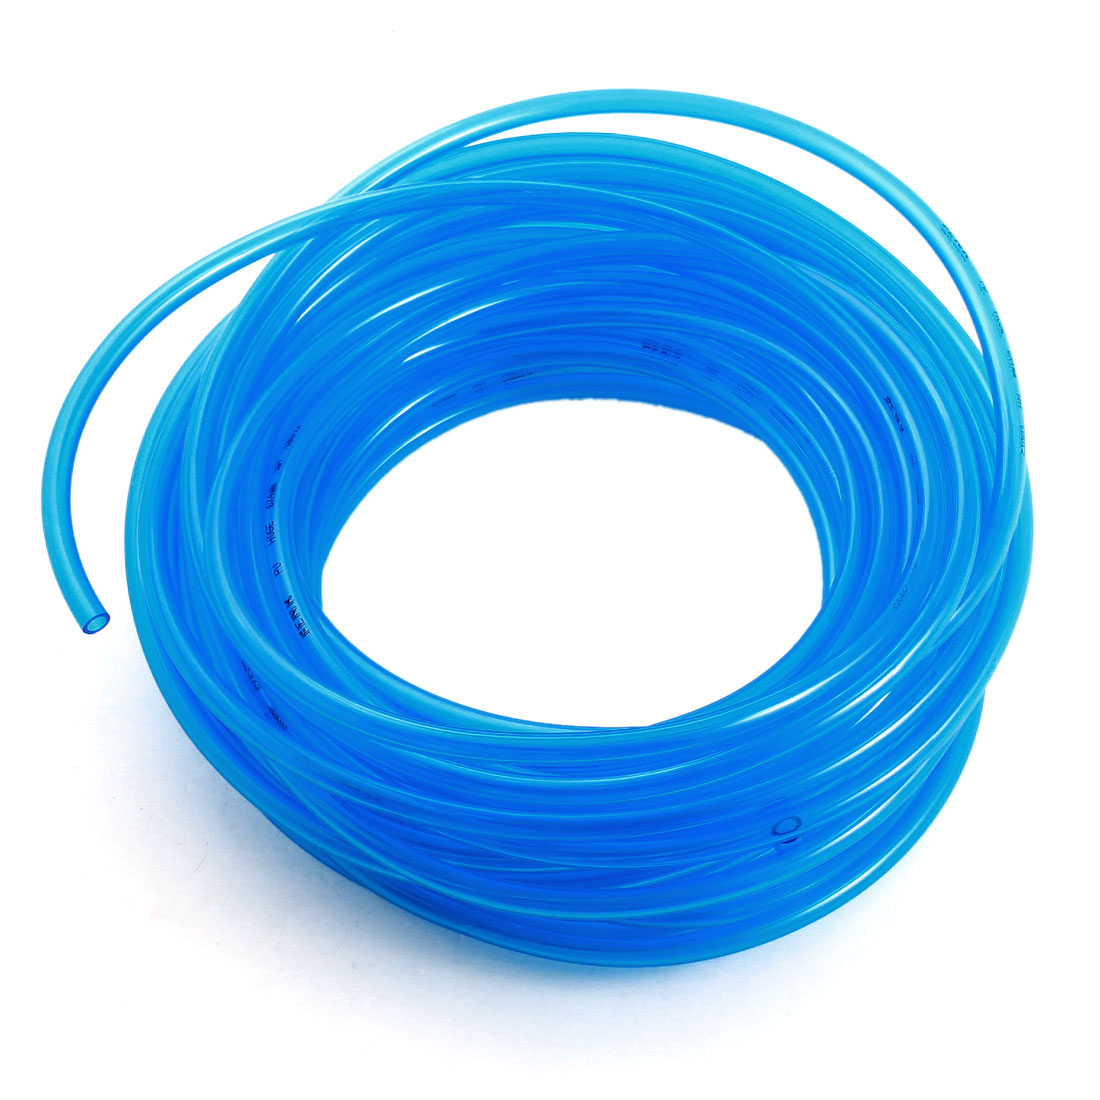 4mm x 6mm 15Meter/50Ft Long Fuel Gas Petrol Diesel Flexible Air PU Tube Hose Clear Blue